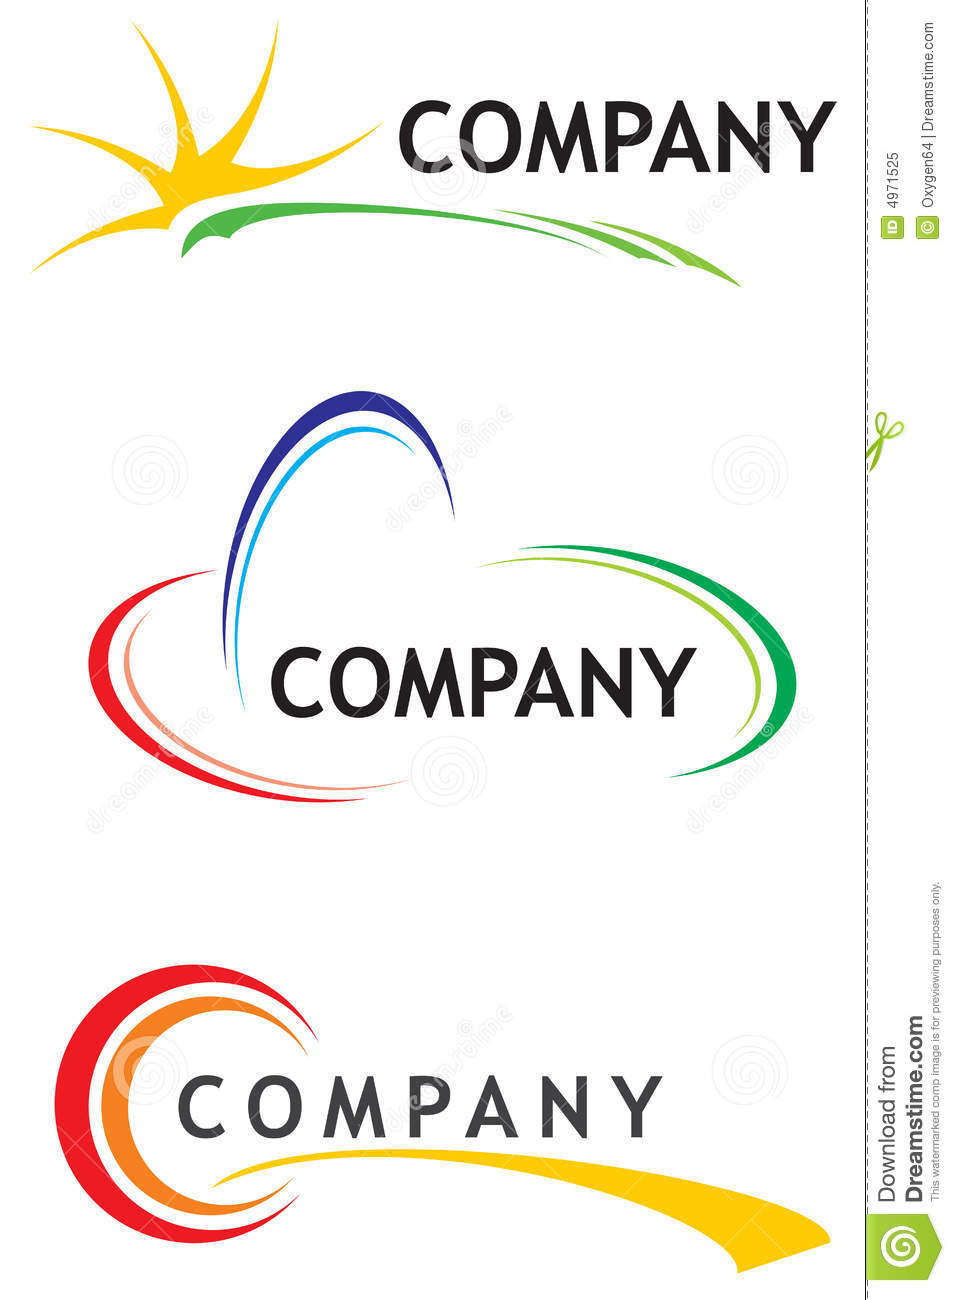 Corporate logo templates stock vector. Illustration of icon - 4971525 for Logo Design Samples Free Download  557yll